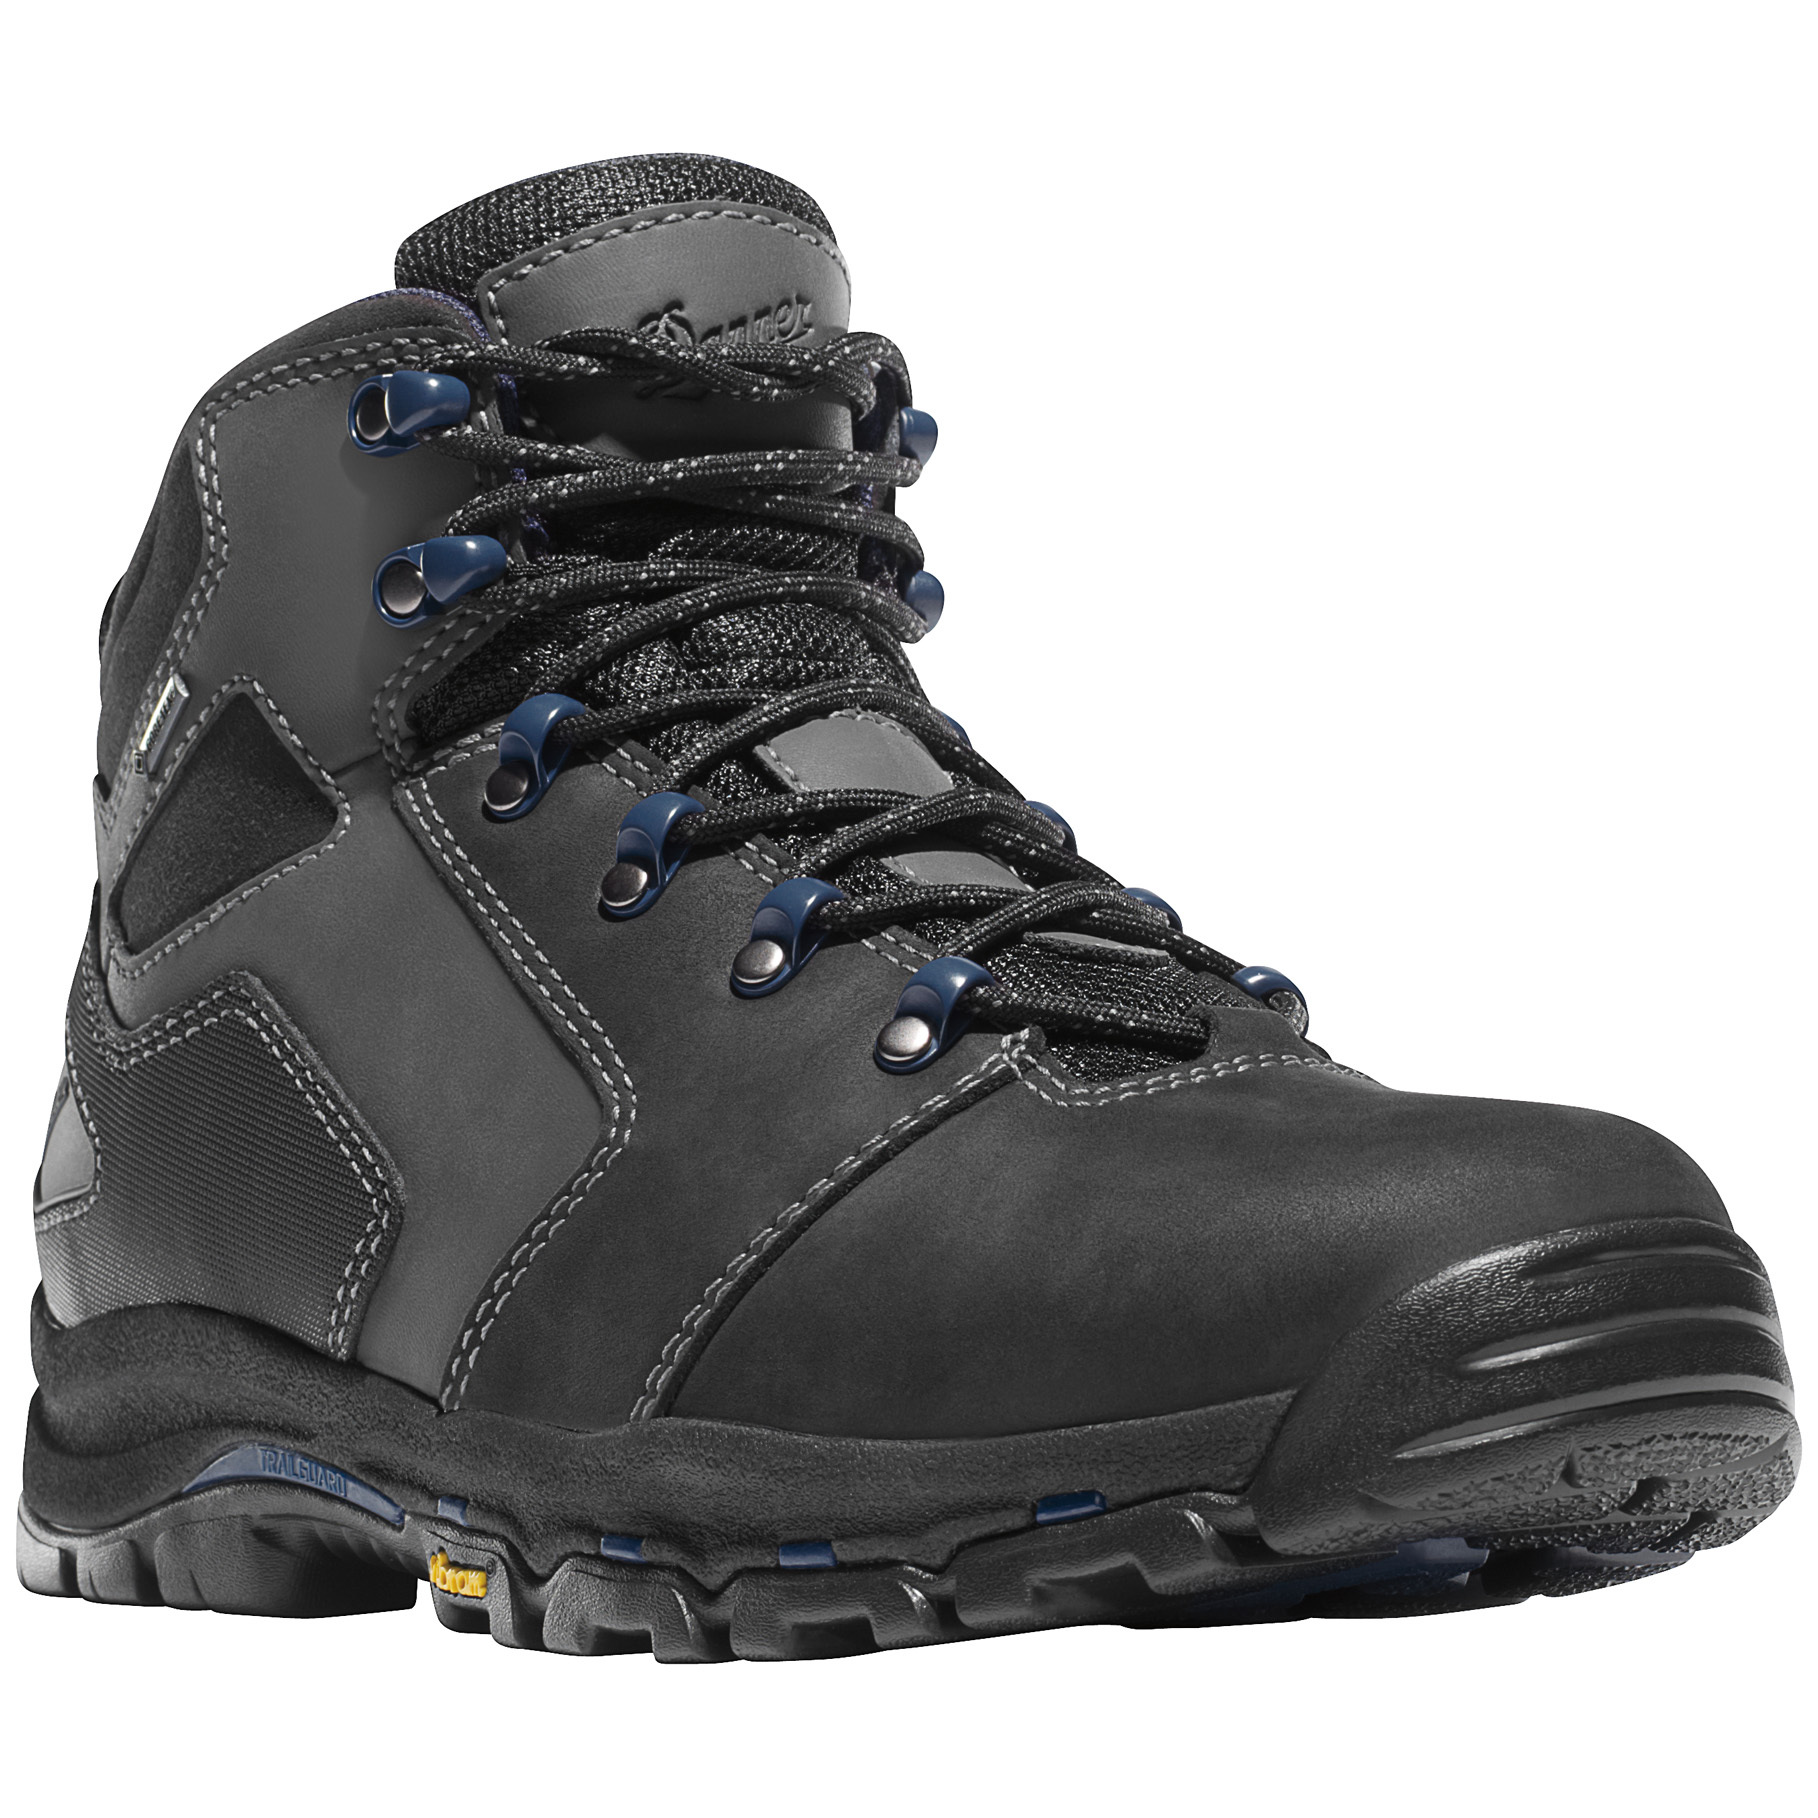 "Danner 4.5"" Vicious GTX WATERPROOF Work Boots deliver comfort that doesn't stop when you punch out! By using top-of-the-line materials like GORE-TEX, Vibram, and an all-leather upper atop a lightweight platform, Danner made these tough, versatile Workers feel like the kind of boot you want to put on at the end of a long day. But they're made for work, all the way.More:Durable waterproof leather uppers 100% waterproof / breathable GORE-TEX lining Vibram Vicious outsole delivers superior indoor / outdoor traction with oil and slip resistance Designed with a little more room in the toe box to accommodate feet that are carrying heavy loads or changing directions quickly Built with the Danner Trailguard platform for lightweight support that feels a hiking boot EVA midsole for shock-absorbing cushioning Electrical hazard protection. Each approx. 23 ozs. State Size and Width, as available in the Shopping Cart. - $169.99"